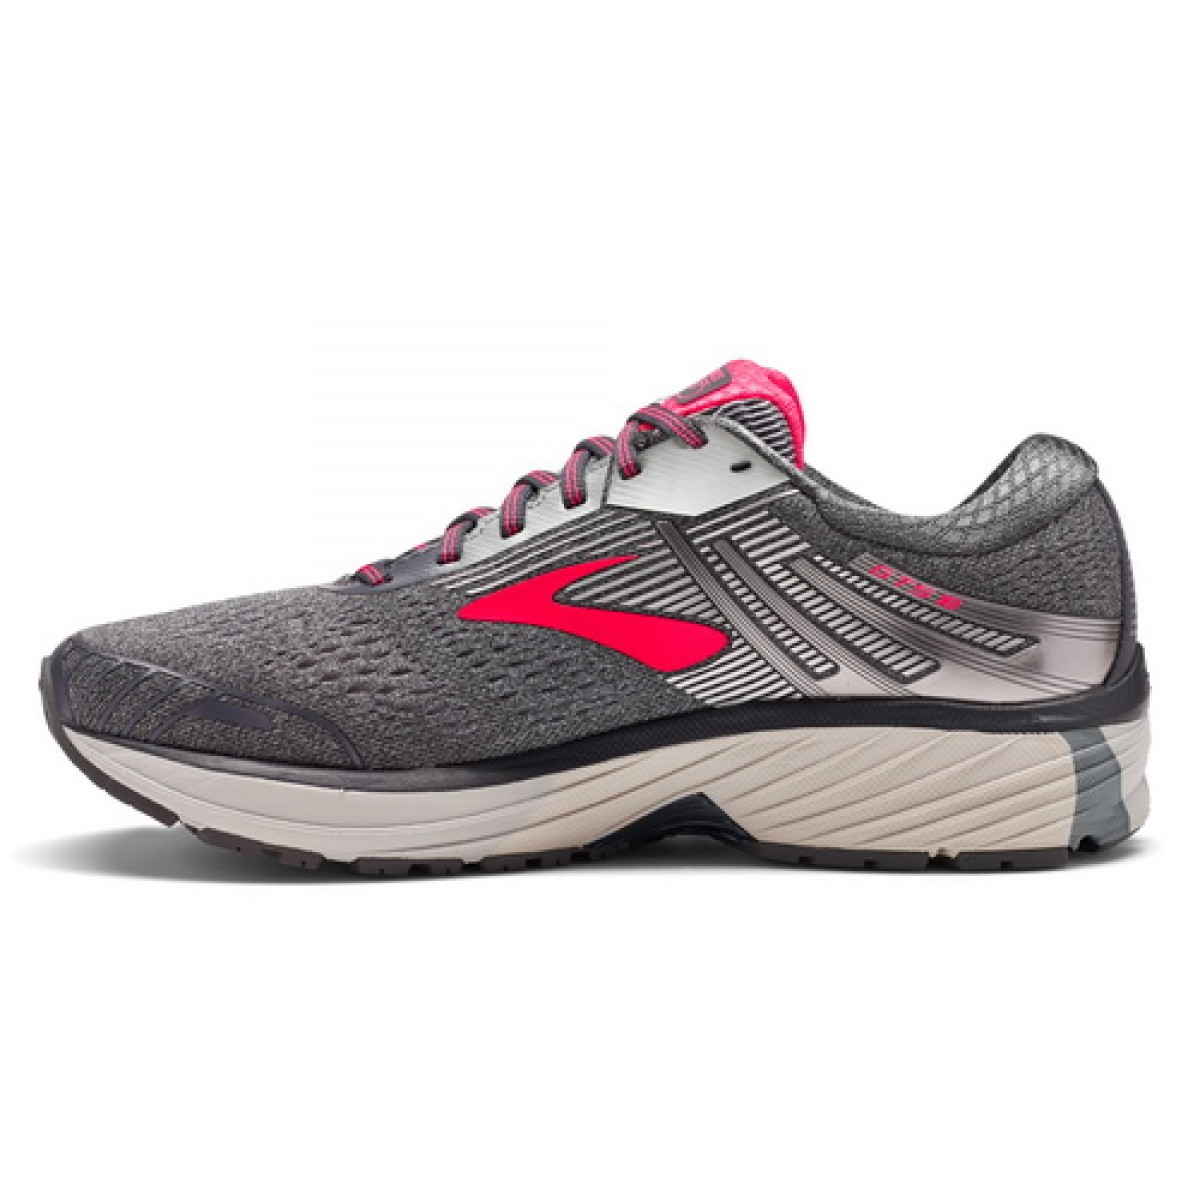 skechers_women_product_1.jpg